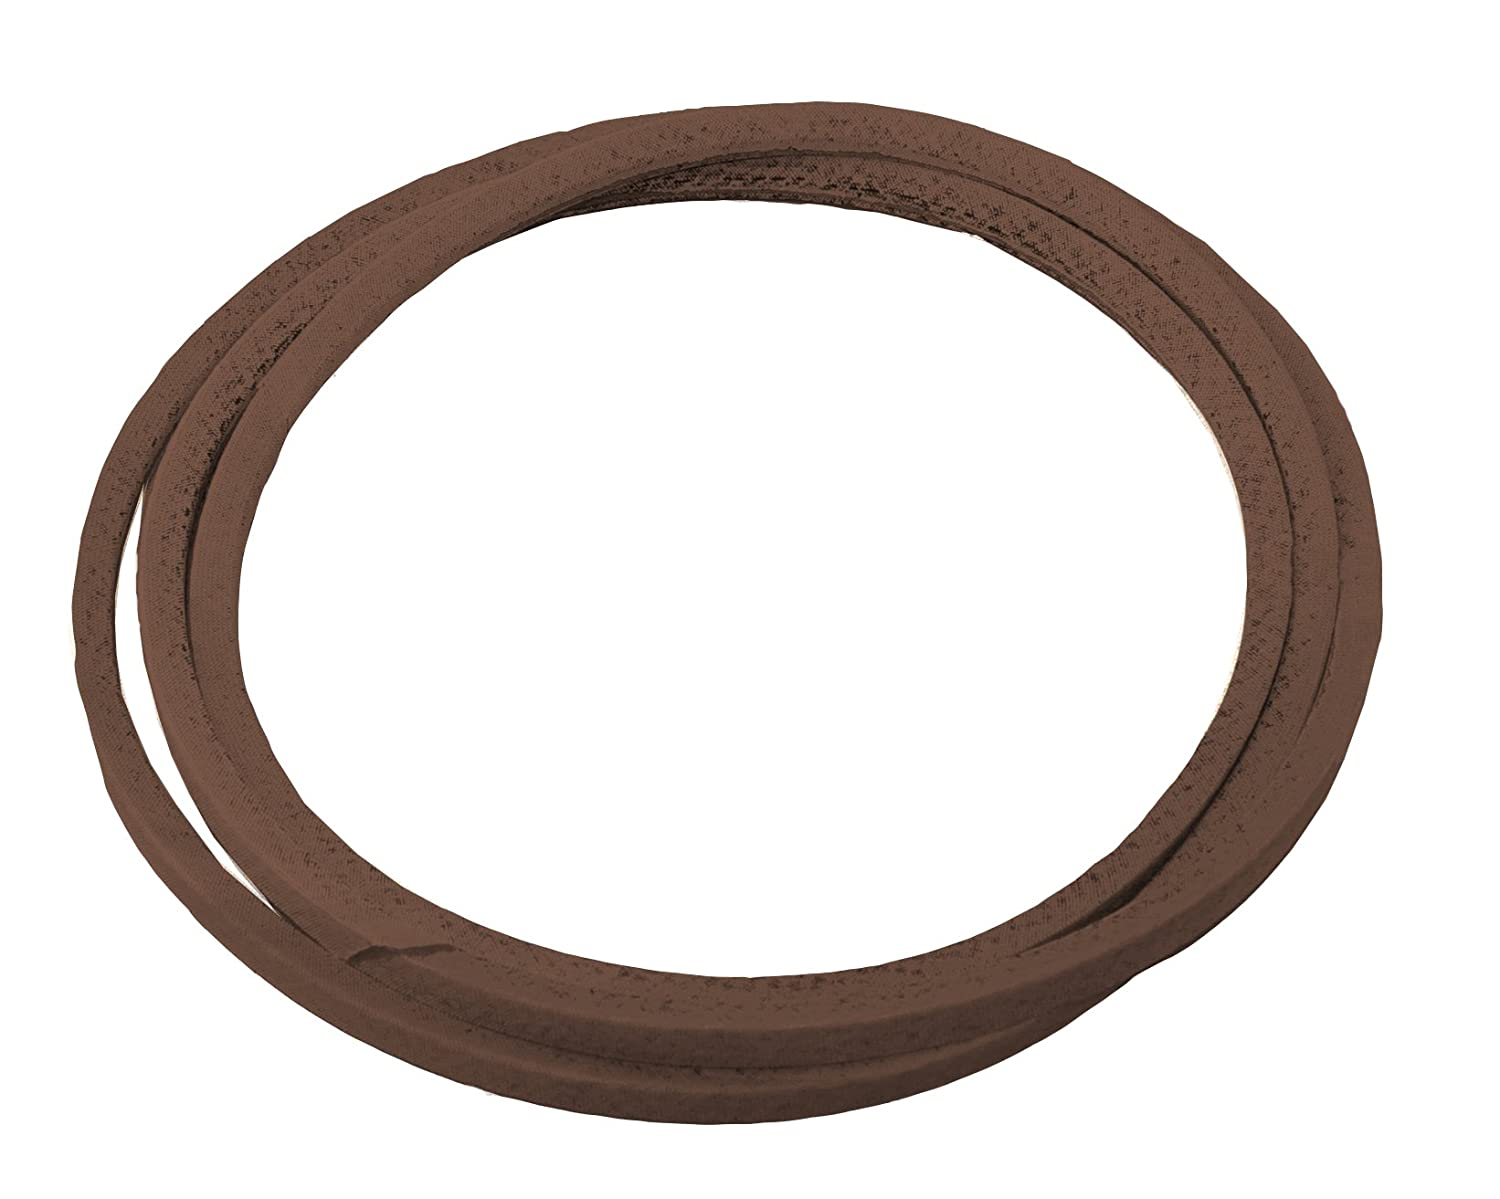 Husqvarna 532130969 Drive Belt For Poulan American Standard 4275551 Parts List And Diagram Ereplacementparts Roper Craftsman Weed Eater Lawn Mower Belts Garden Outdoor